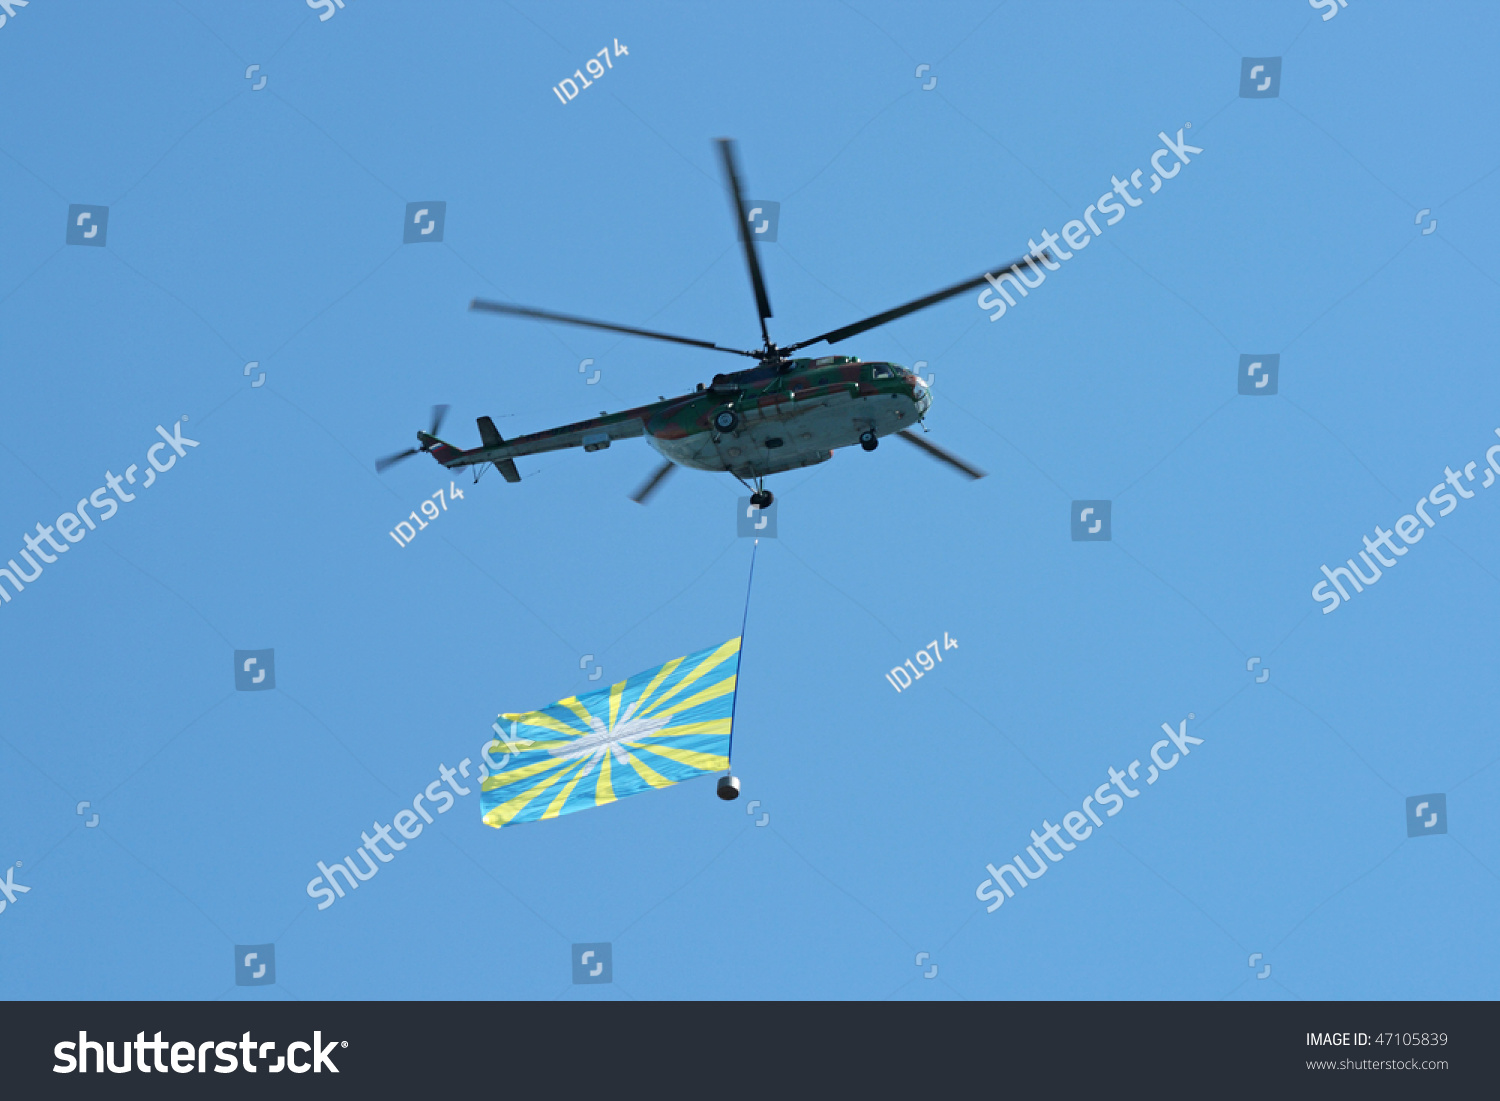 May 9: The Helicopter With A Flag Against